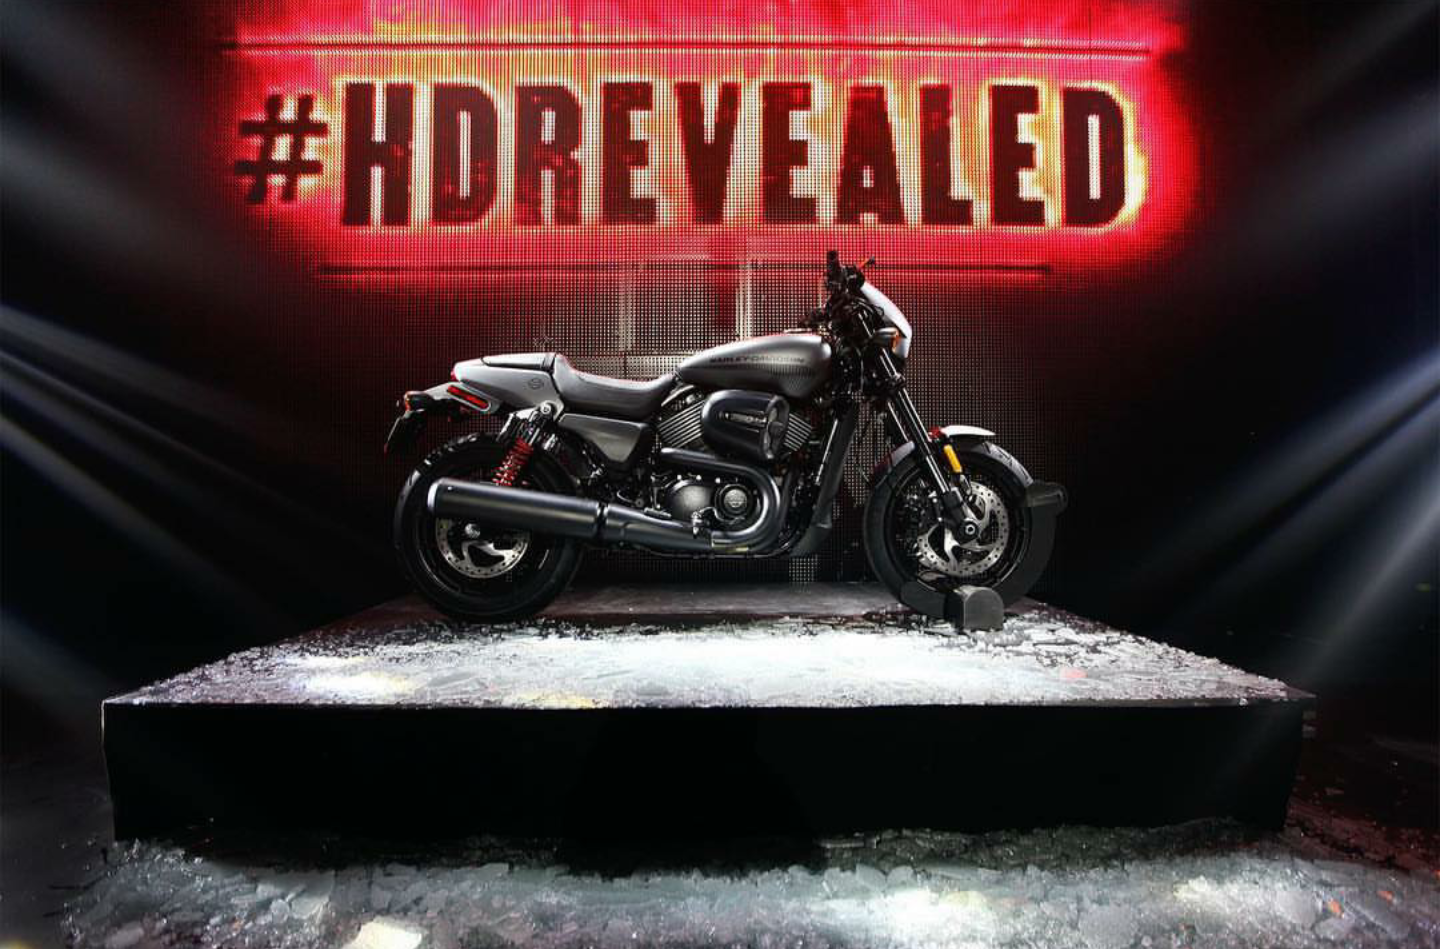 HARLEY DAVIDSON UNVEIL